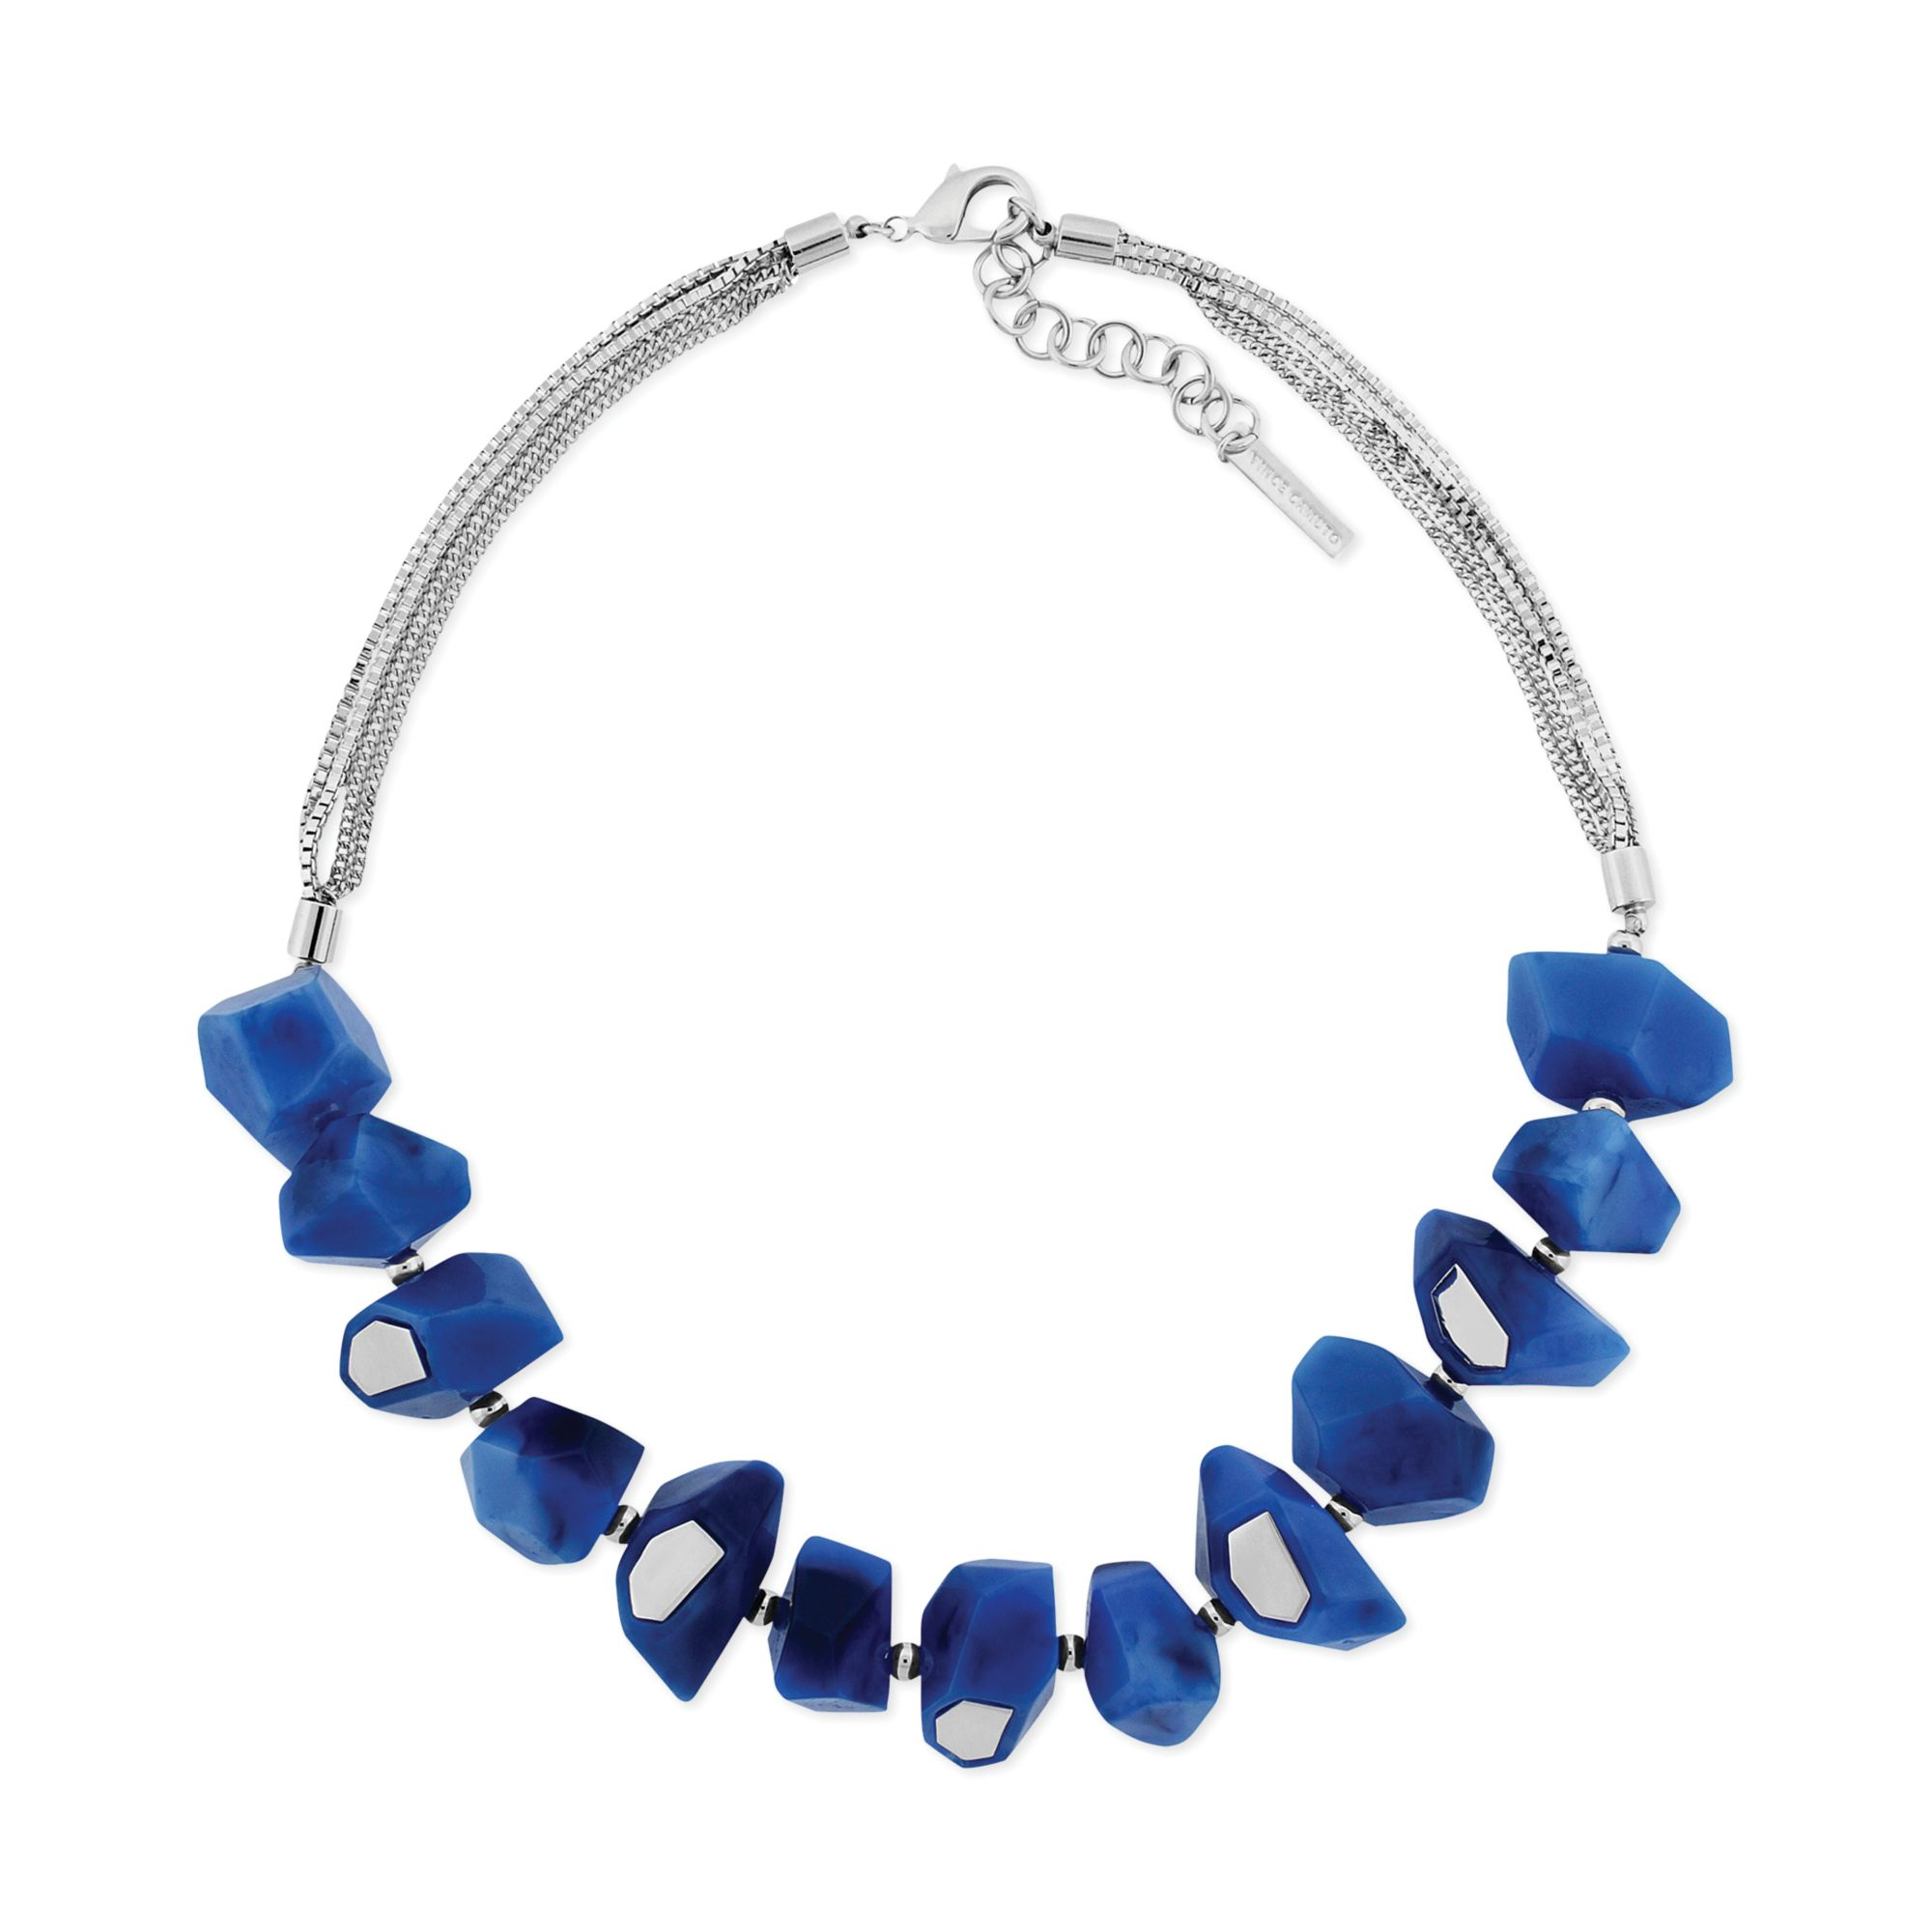 Vince camuto Silvertone Blue Resin Stone Frontal Necklace ...